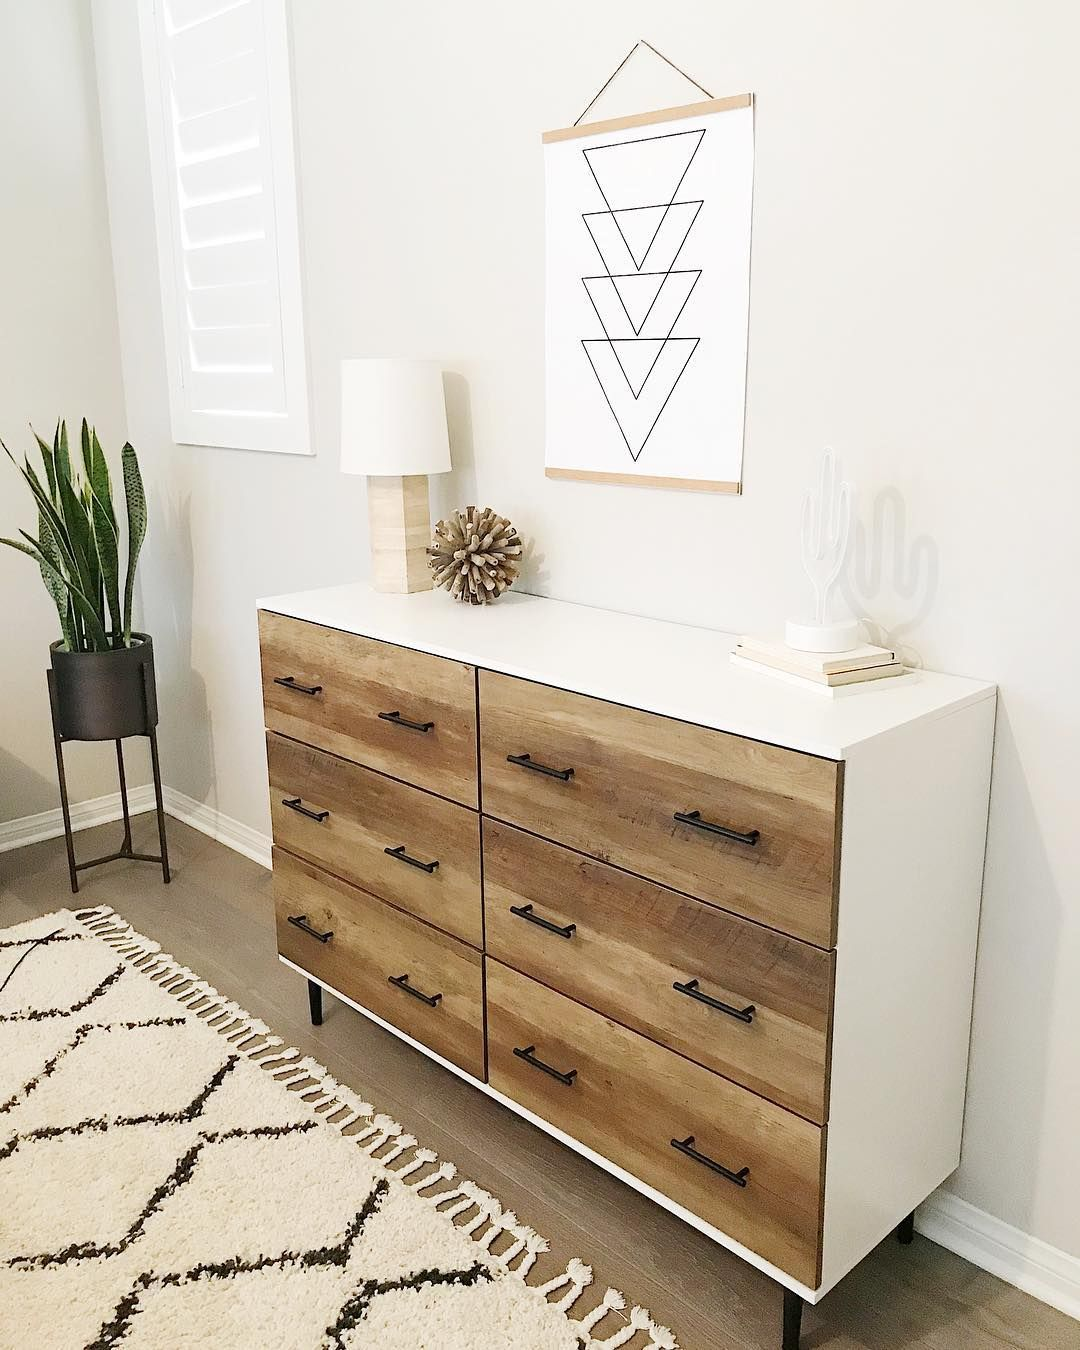 Audrey Crisp On Instagram We Needed More Storage In Our Bedroom So I Got This Cute Modern Dresser Fr Modern Bedroom Dressers Dresser Decor Dresser Top Decor